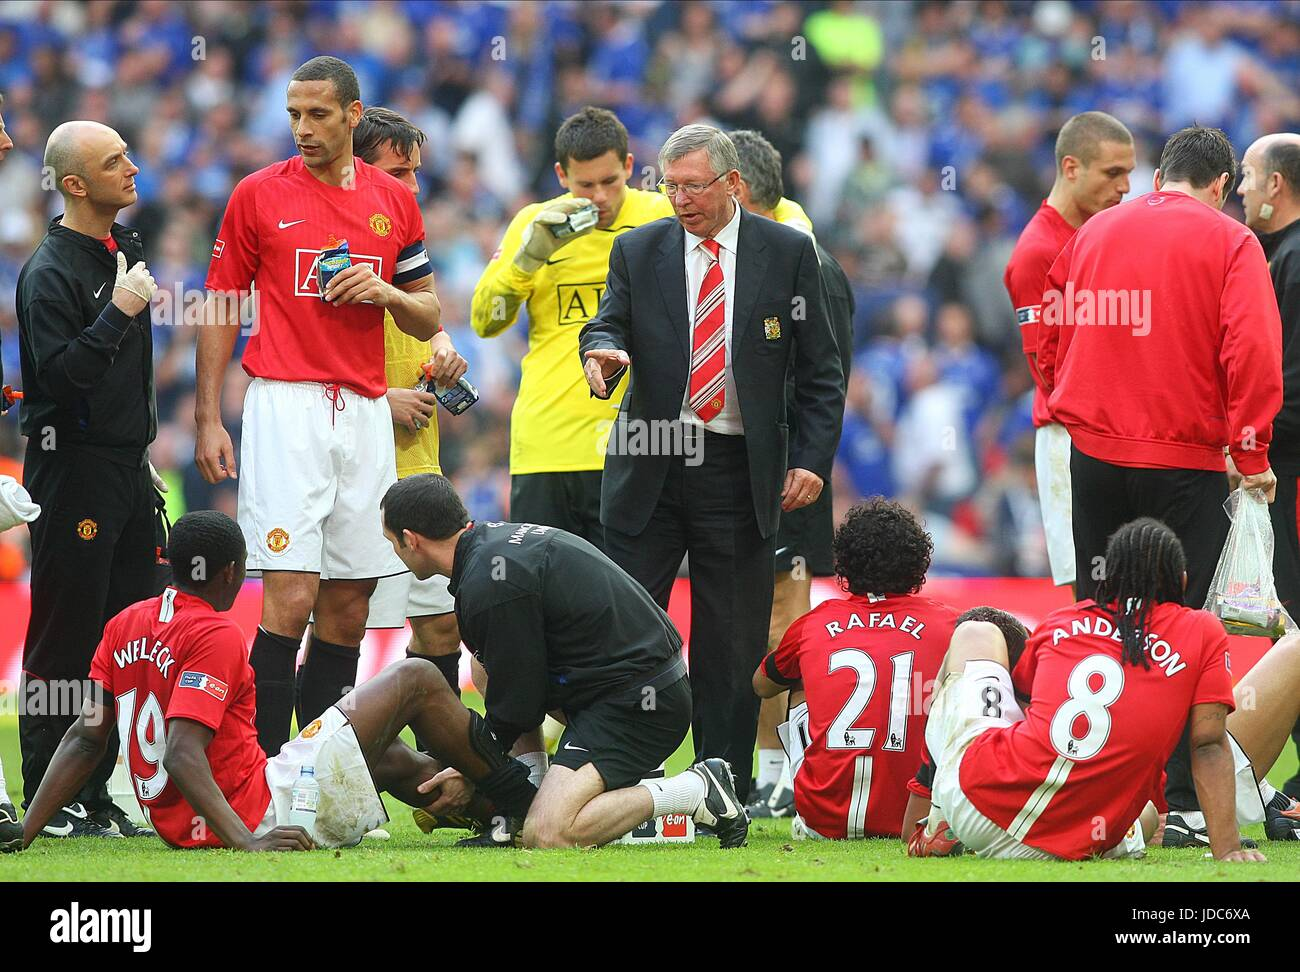 ALEX FERGUSON TALKS TO PLAYERS MANCHESTER UNITED FC WEMBLEY STADIUM LONDON ENGLAND 19 April 2009 - Stock Image